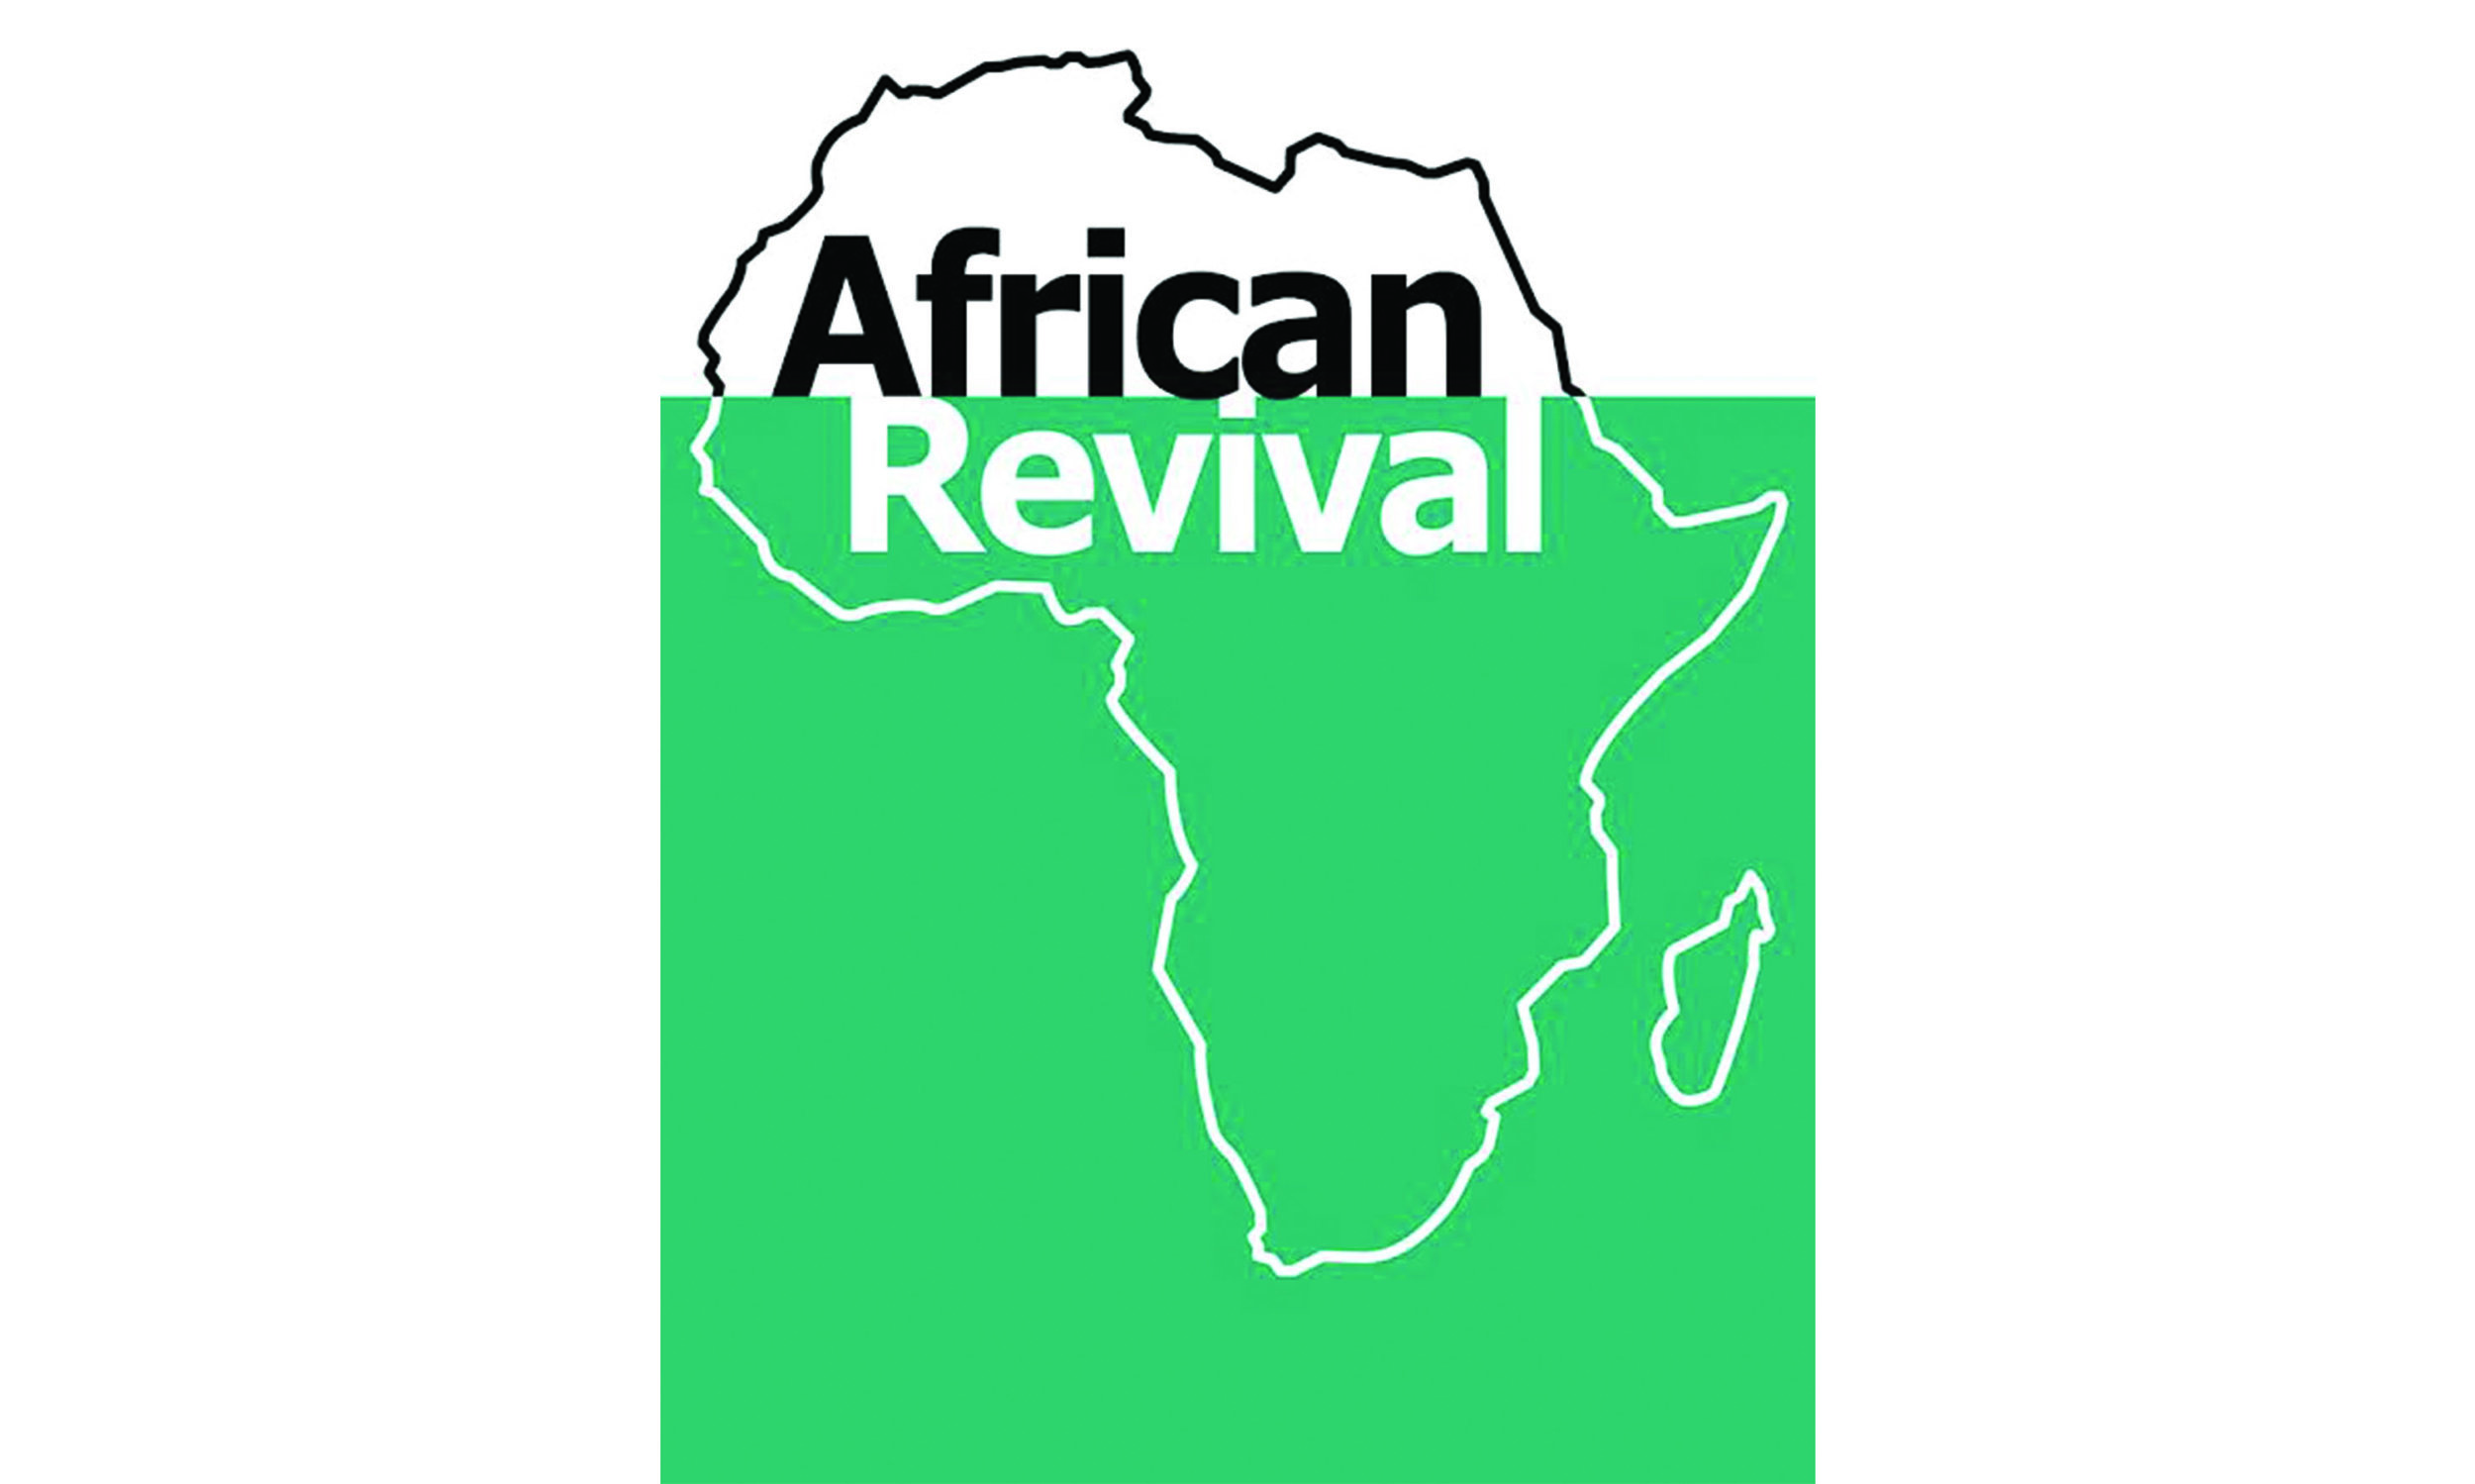 Classic Car Hire… - are proud supporters of African Revival – providing equal access to quality education.www.africanrevival.org